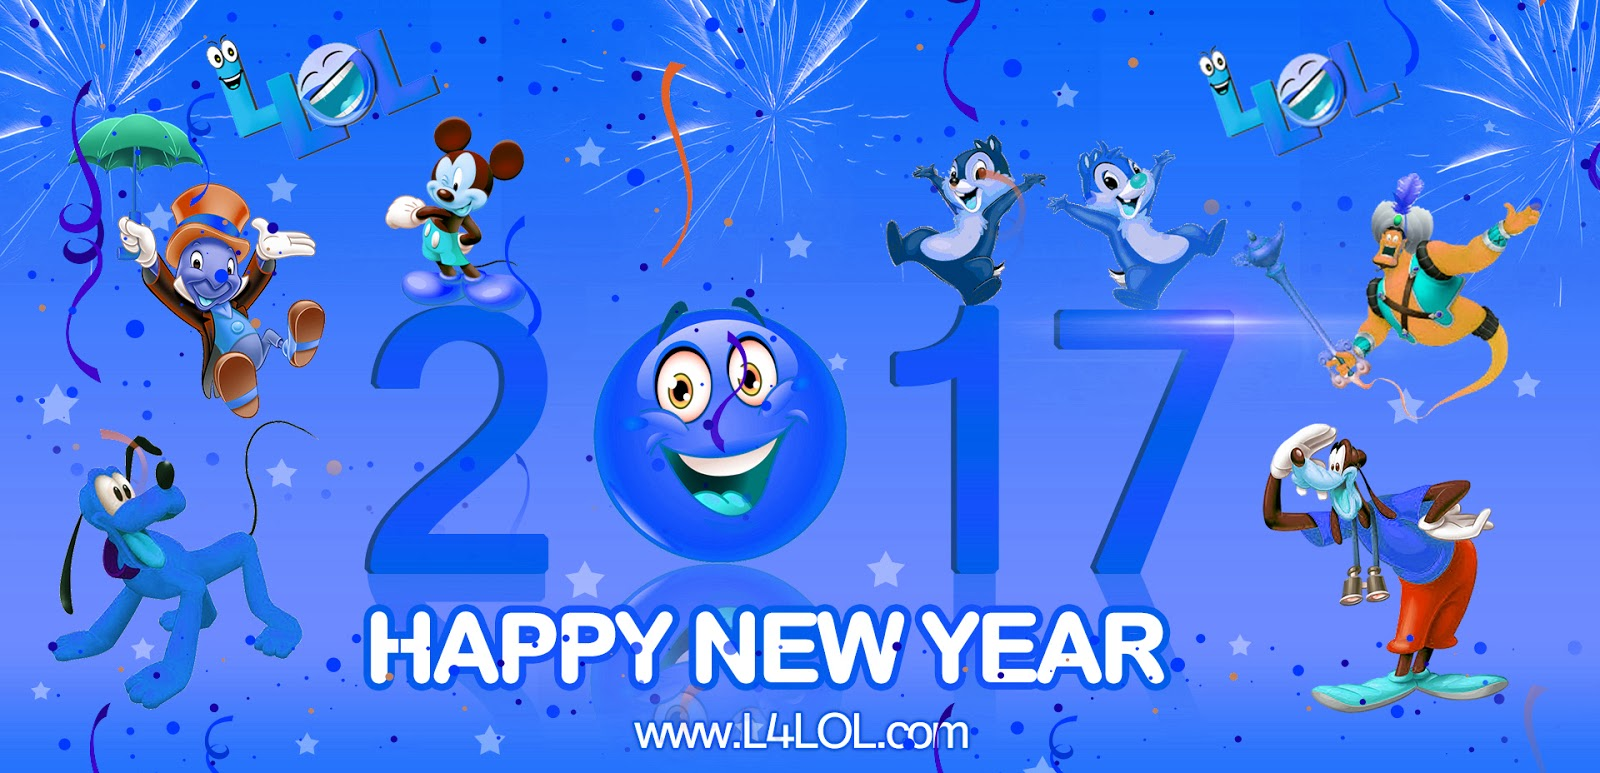 download happy new year hd wallpaper free download gallery